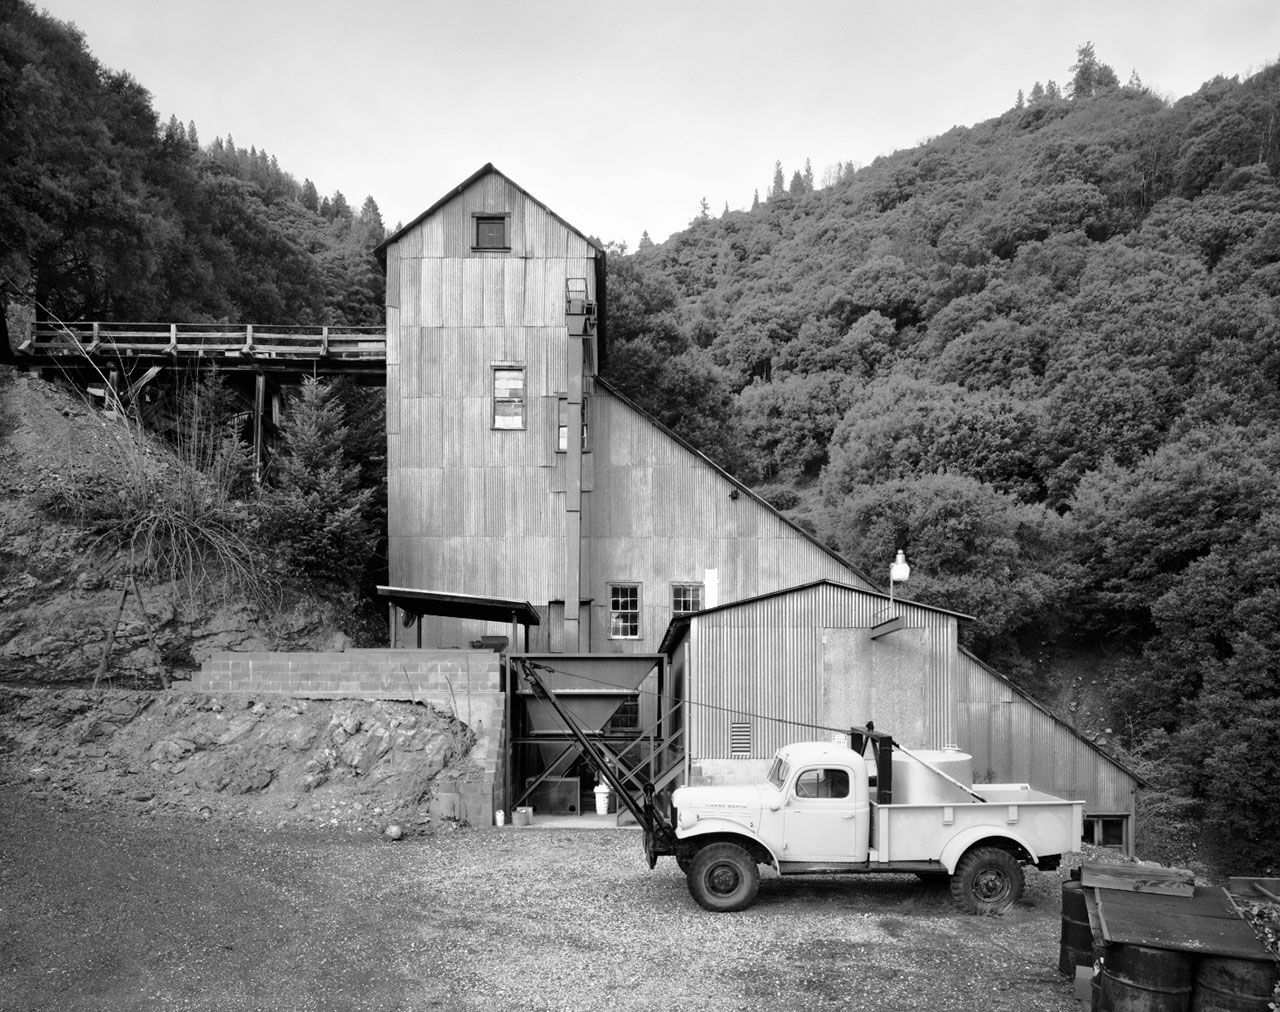 Oriental Mine Stamp Mill near Alleghany, from David Stark Wilson's photography book Structures of Utility